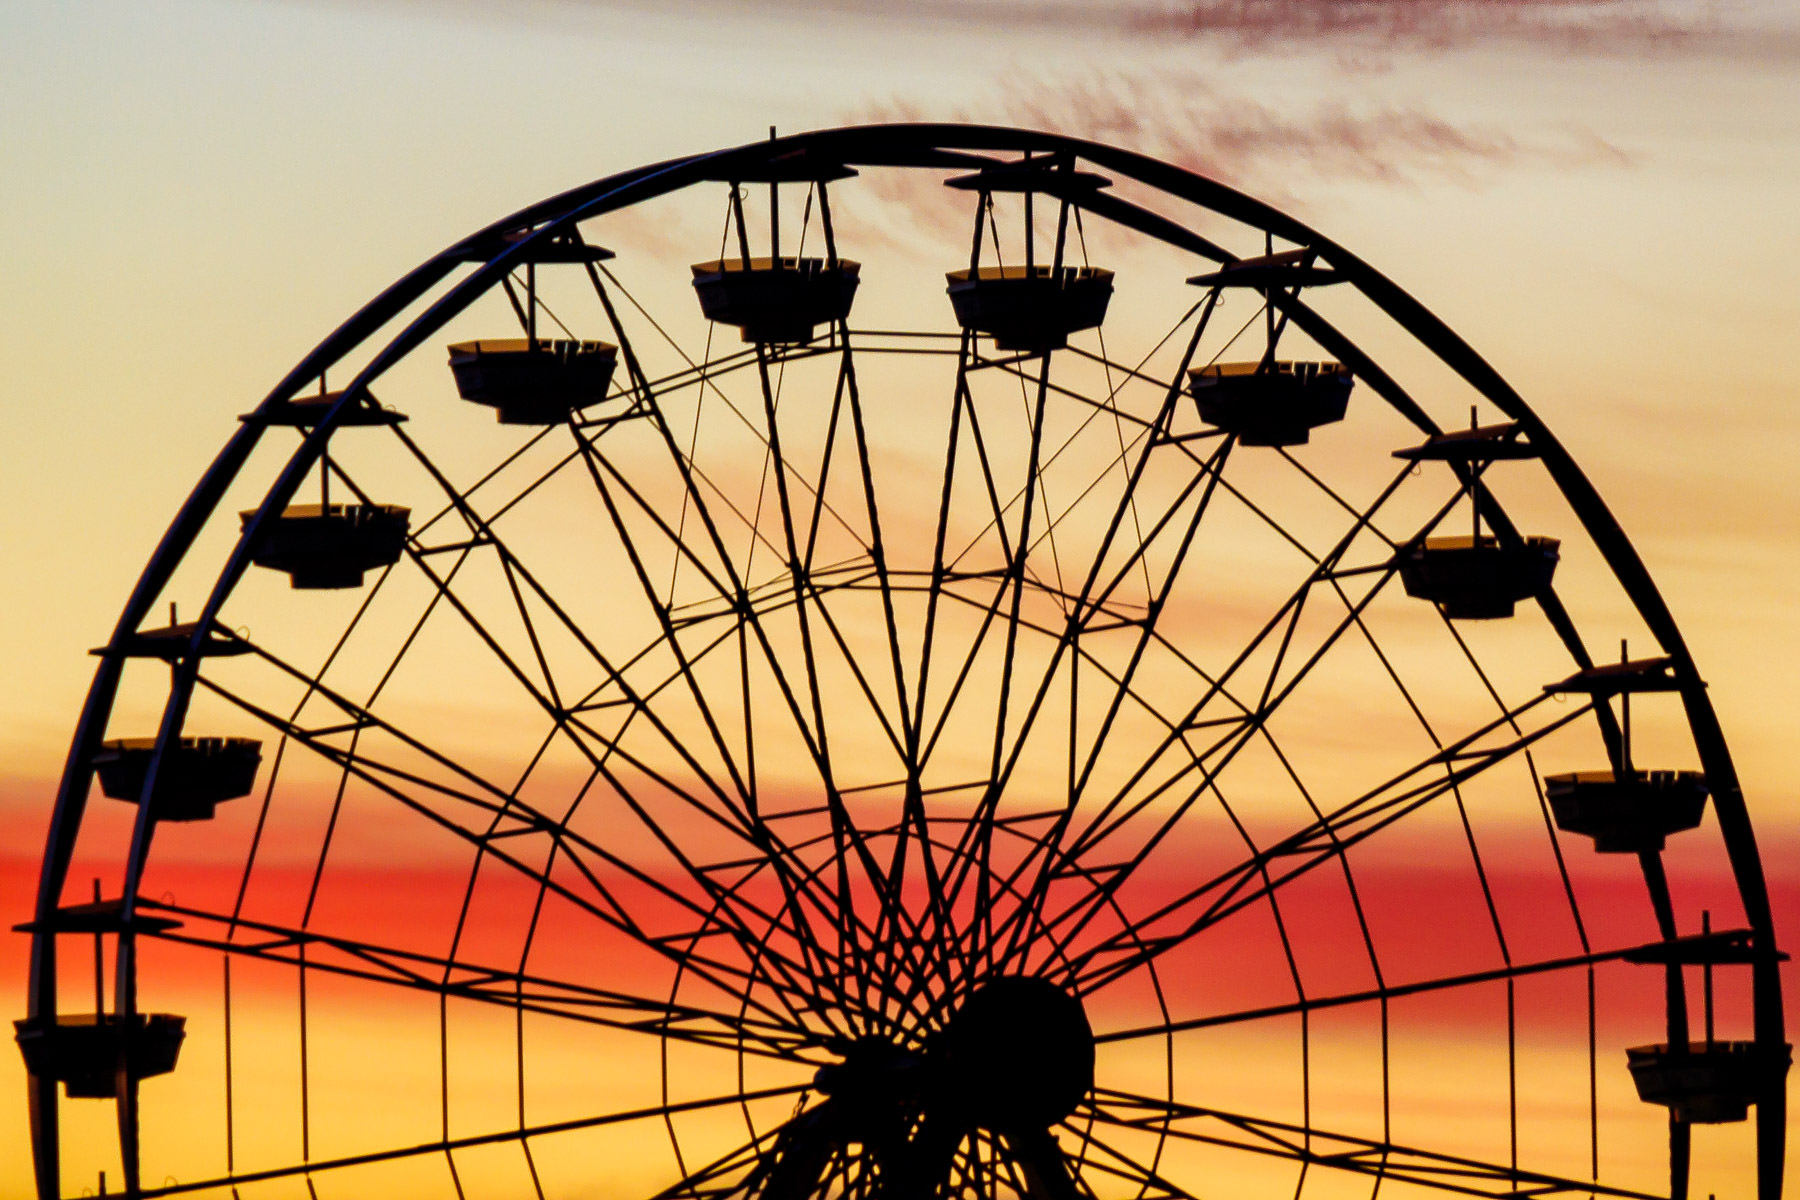 Detail of the Ferris wheel on Galveston, Texas' pleasure pier as the sun rises over the Gulf of Mexico.